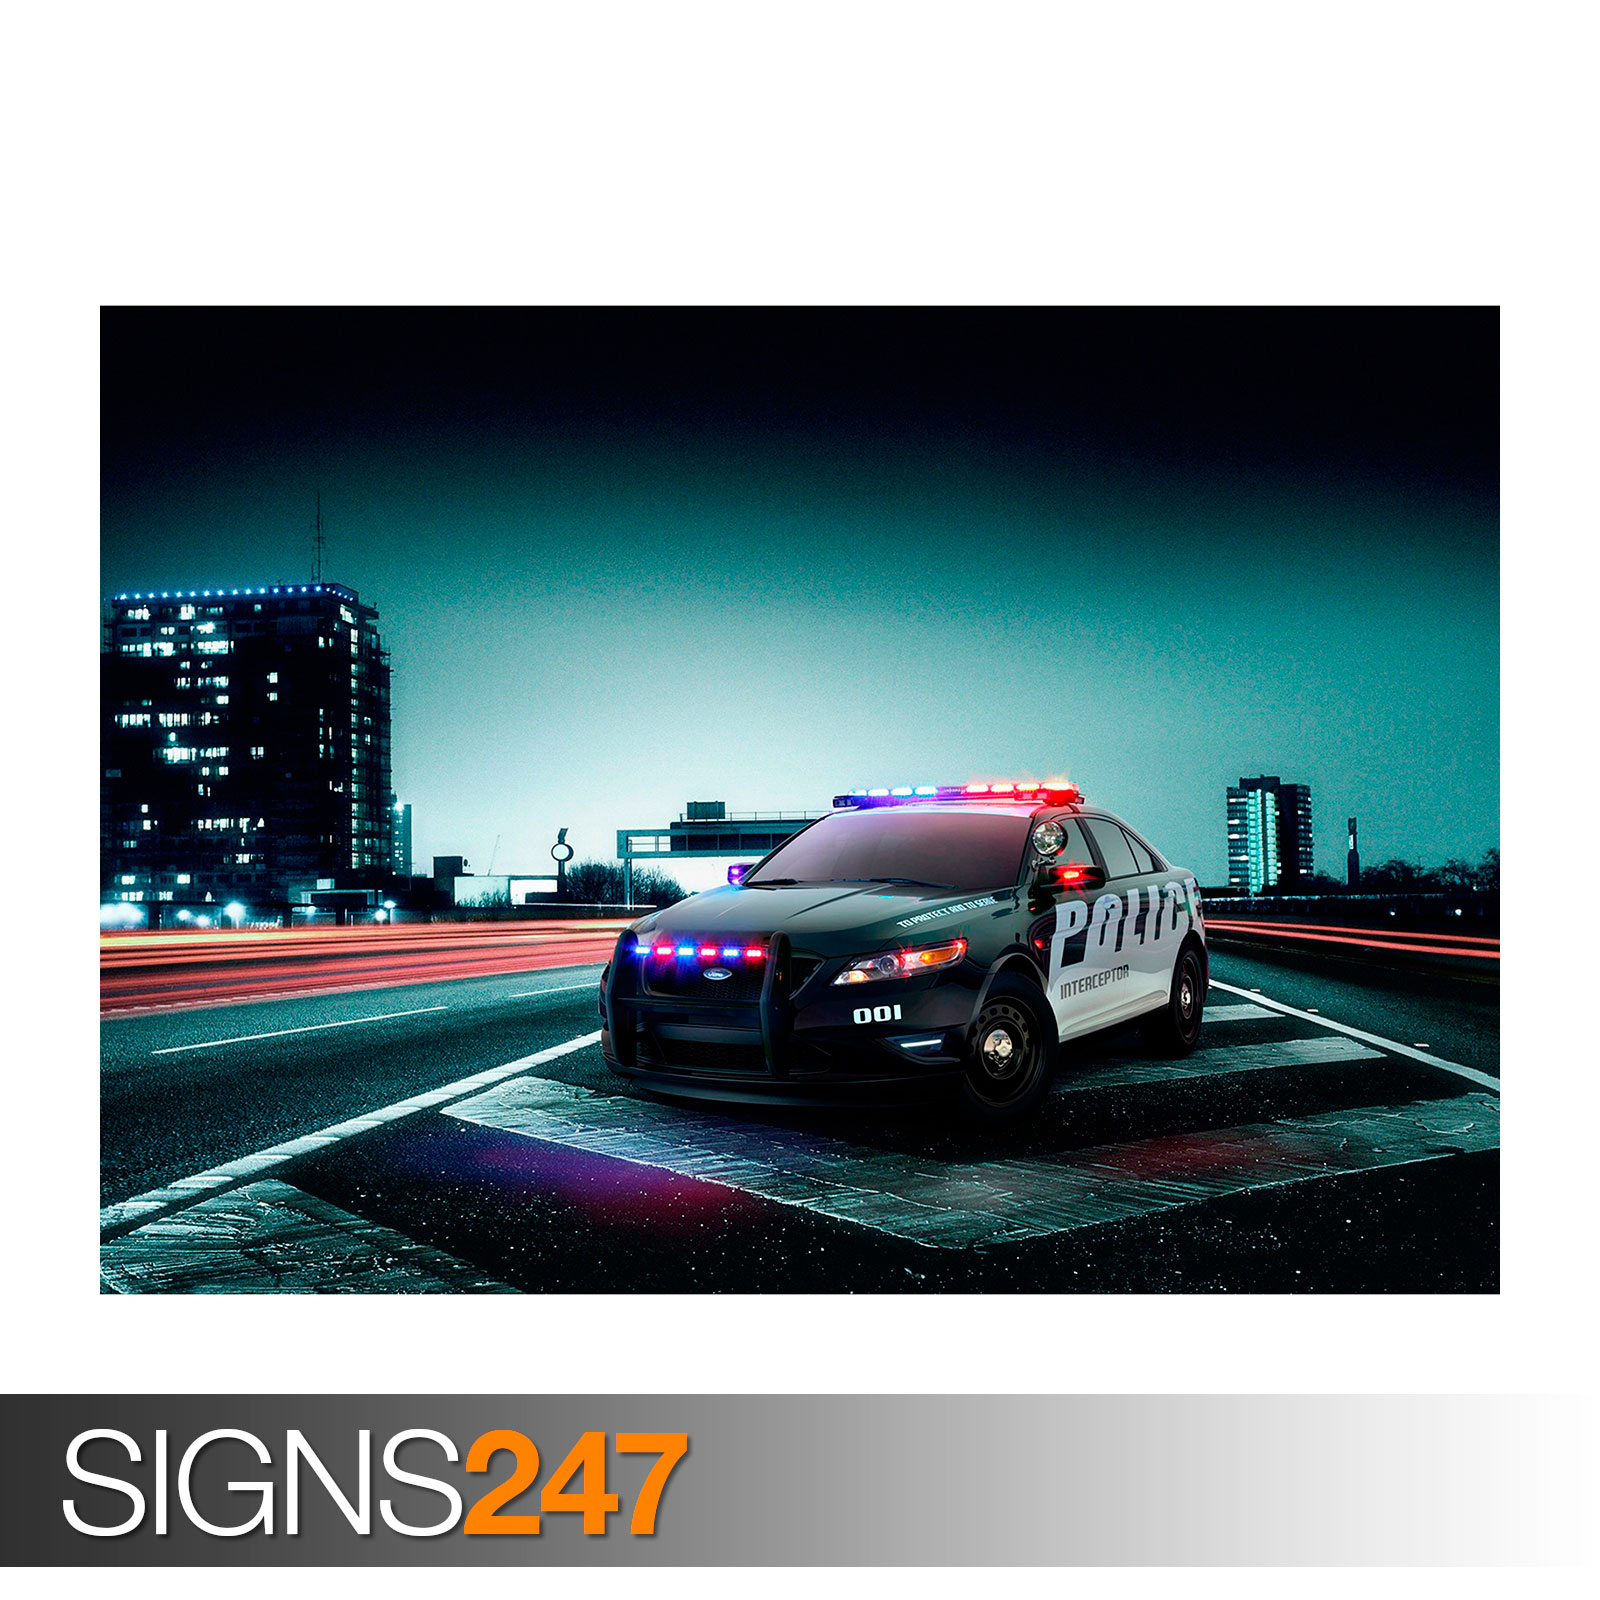 ford police interceptor 0448 voiture poster photo poster print art toutes les tailles ebay. Black Bedroom Furniture Sets. Home Design Ideas